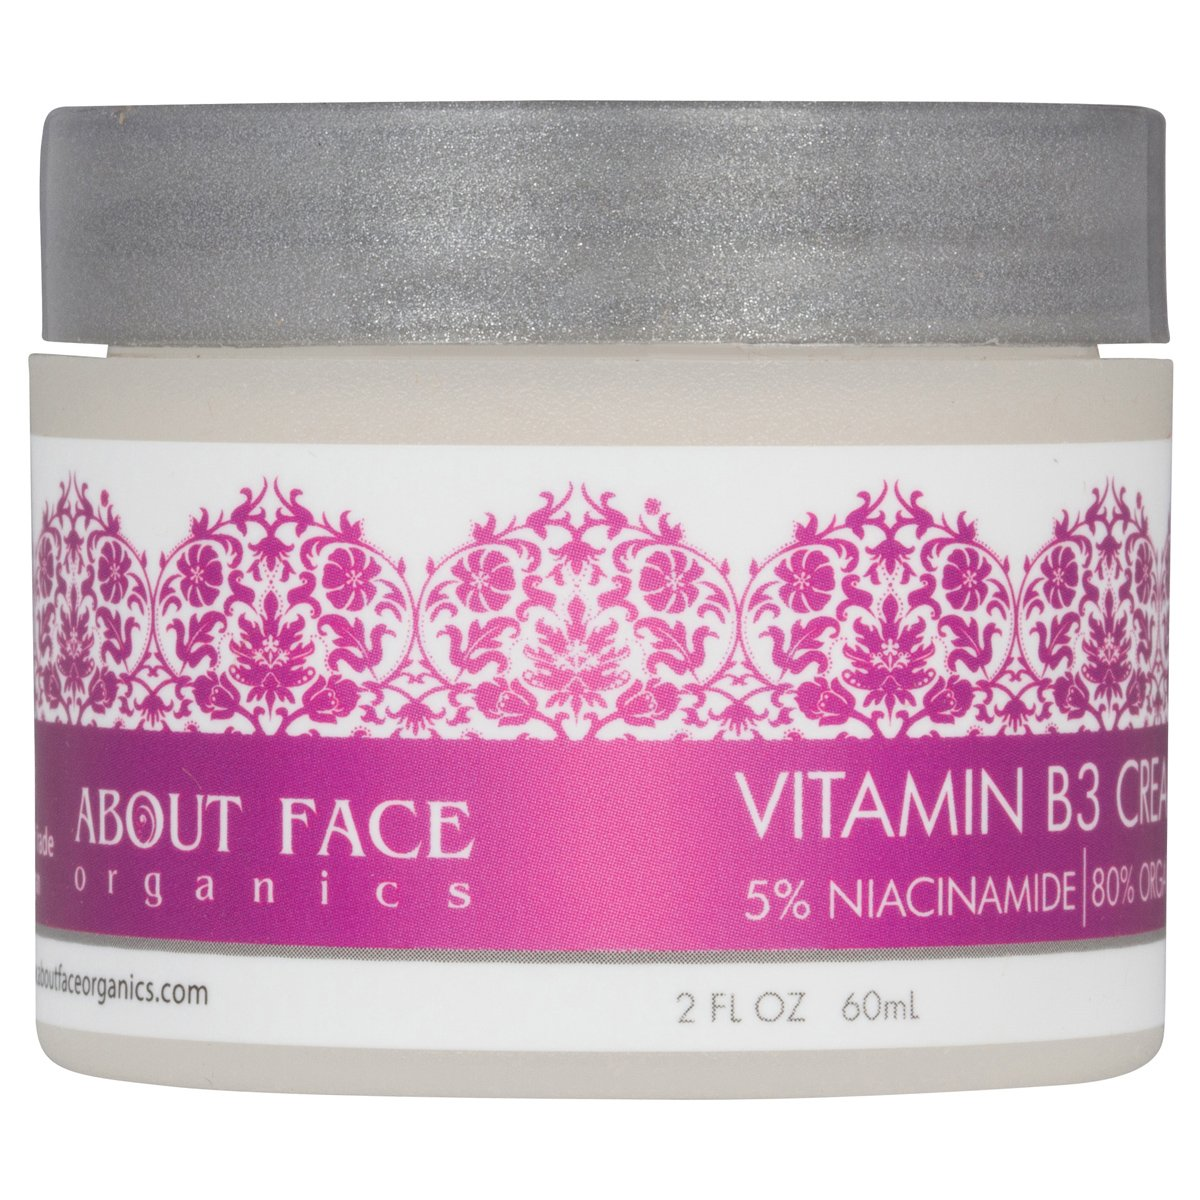 Vitamin B3 Cream 5% Niacinamide by About Face Organics   80% Organic Vitamin B For Face   Paraben & Cruelty Free   2 Oz